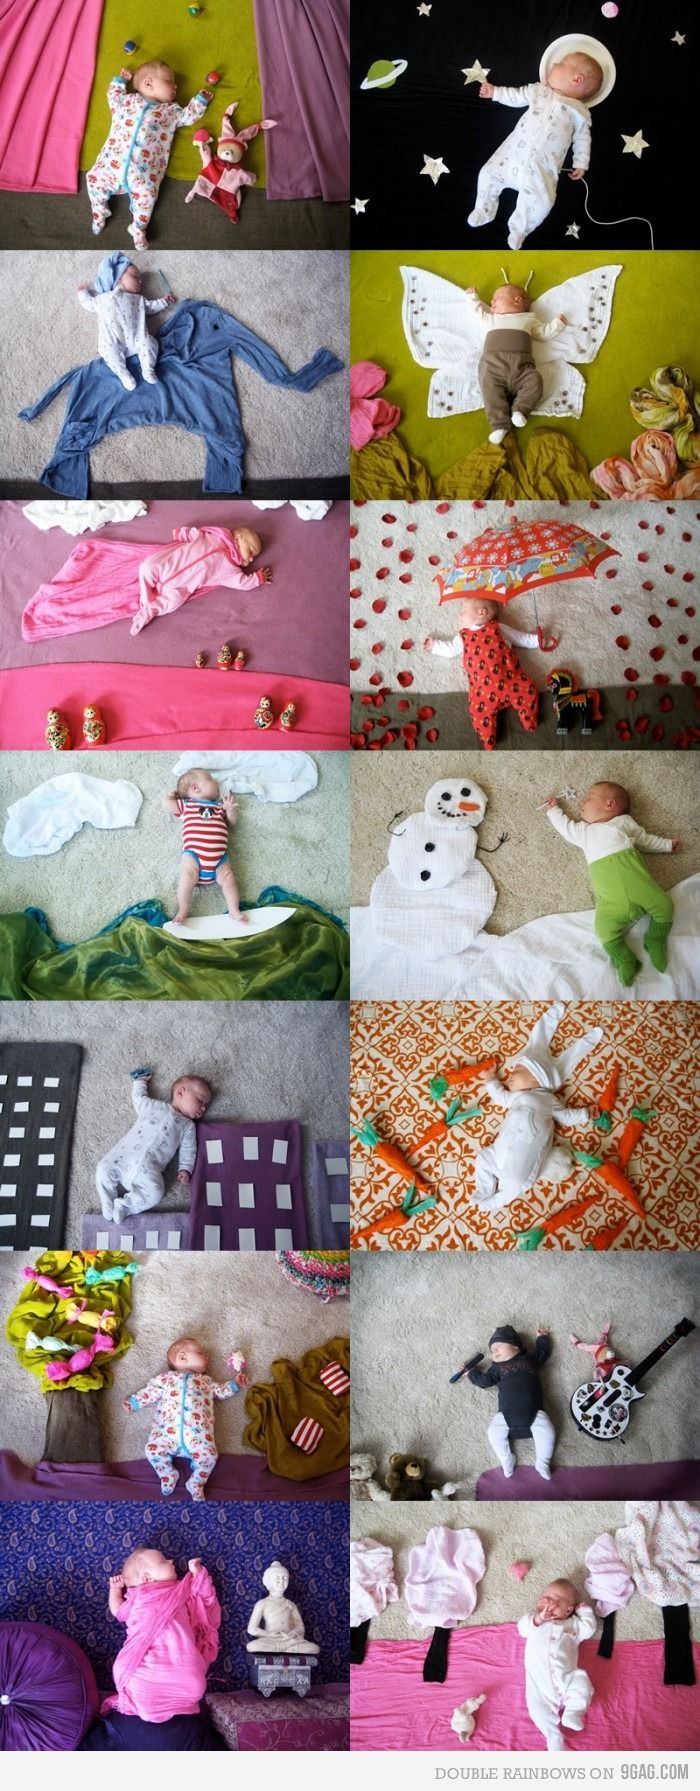 Sleeping Baby- mom creates fantastic scenes while baby sleeps.